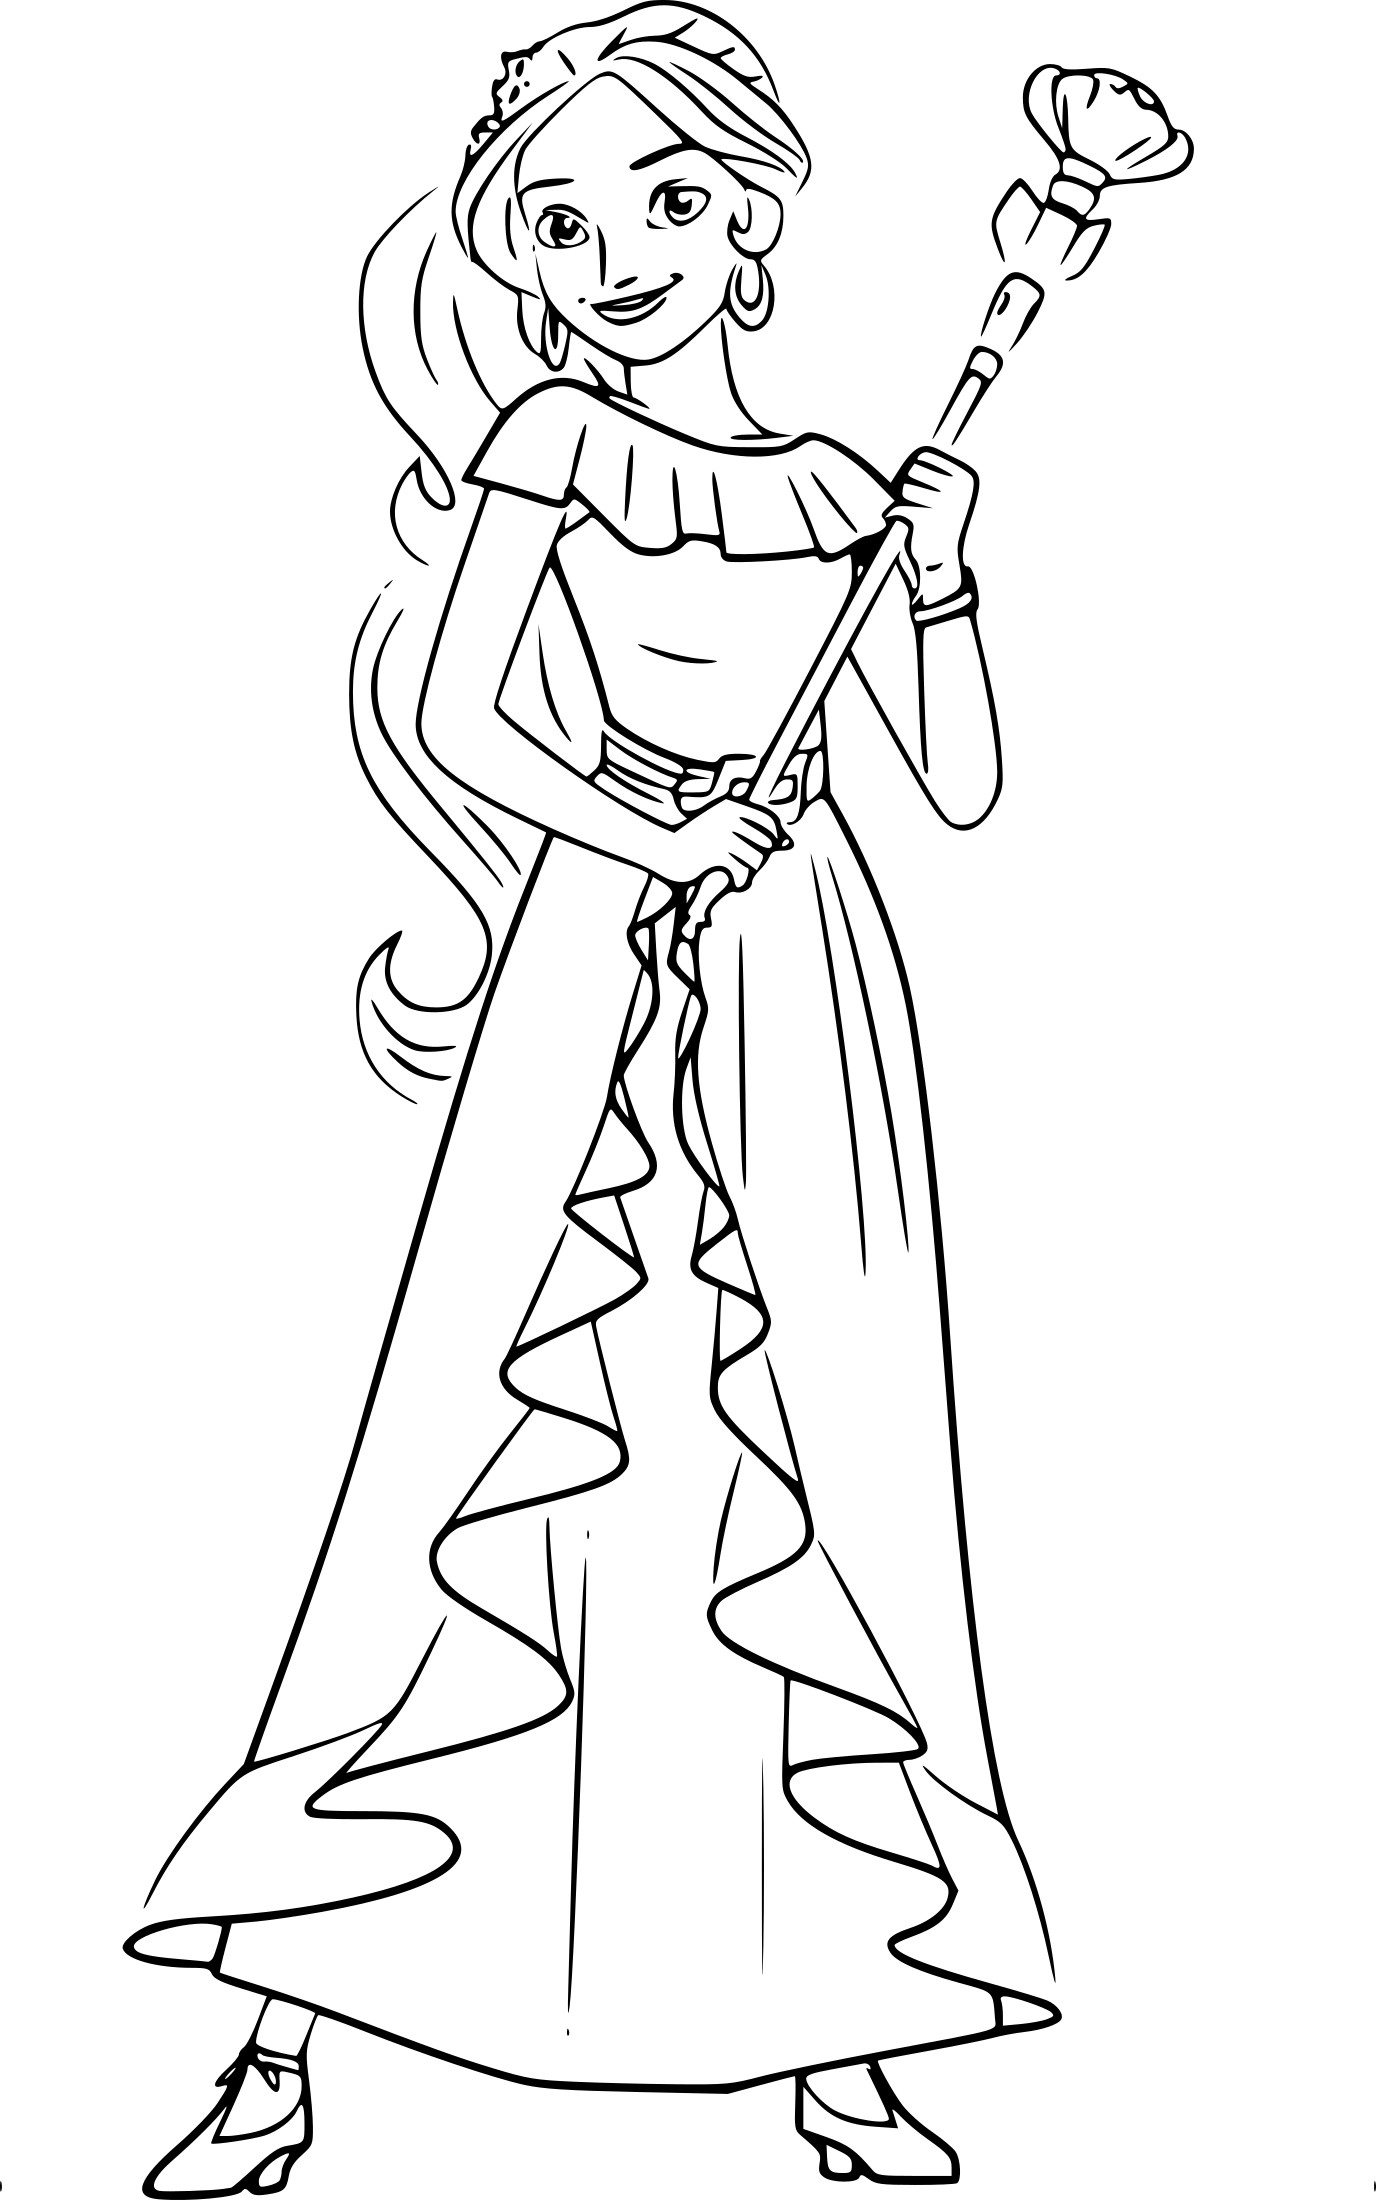 coloriage princesse disney - Coloriage De Princesse